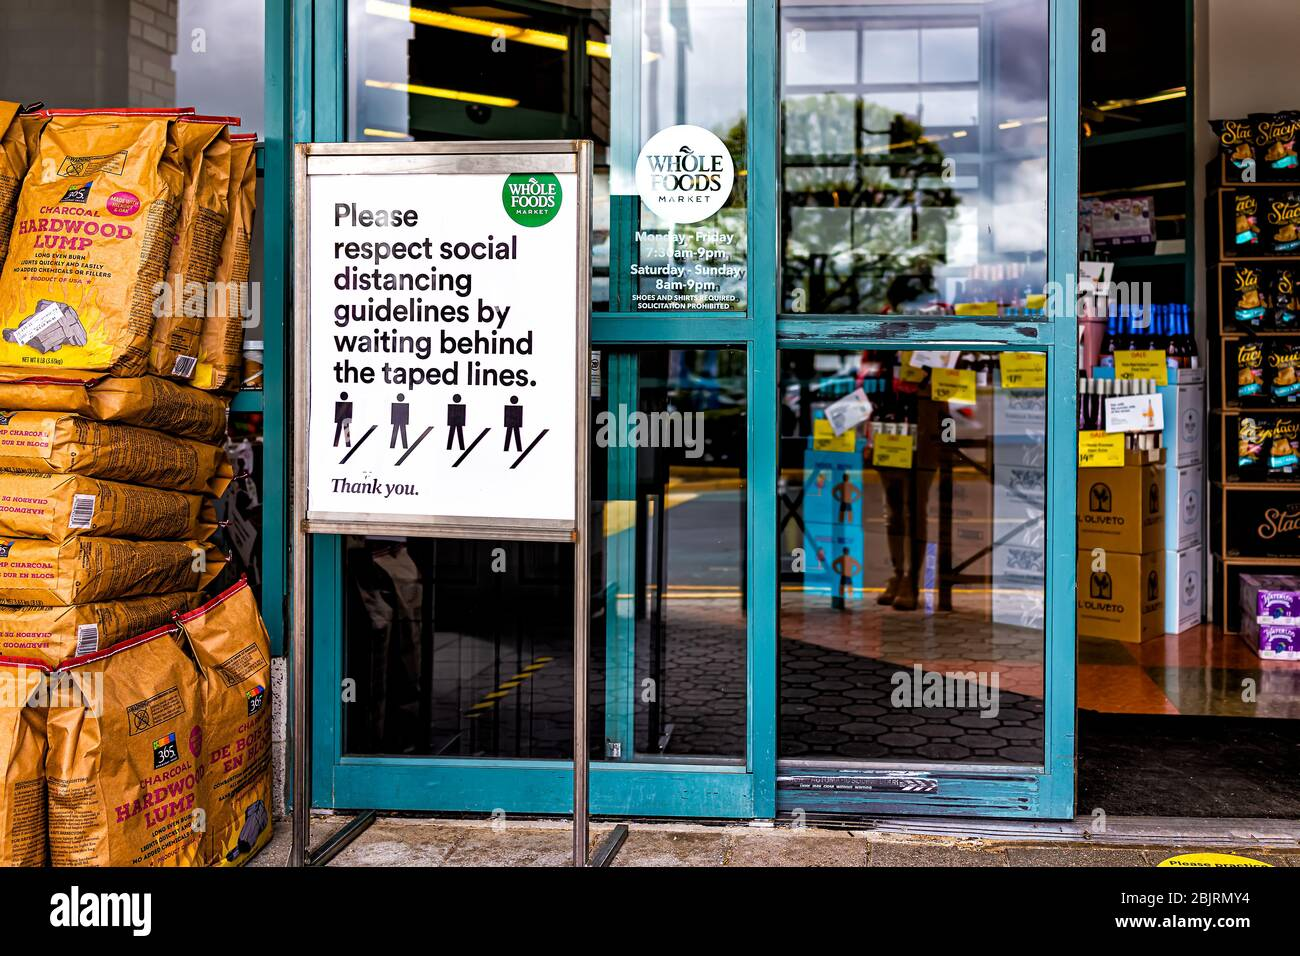 Reston, USA - April 27, 2020: Northern Virginia metro area Plaza America Whole Foods Amazon grocery store sign for social distancing at shop entrance Stock Photo